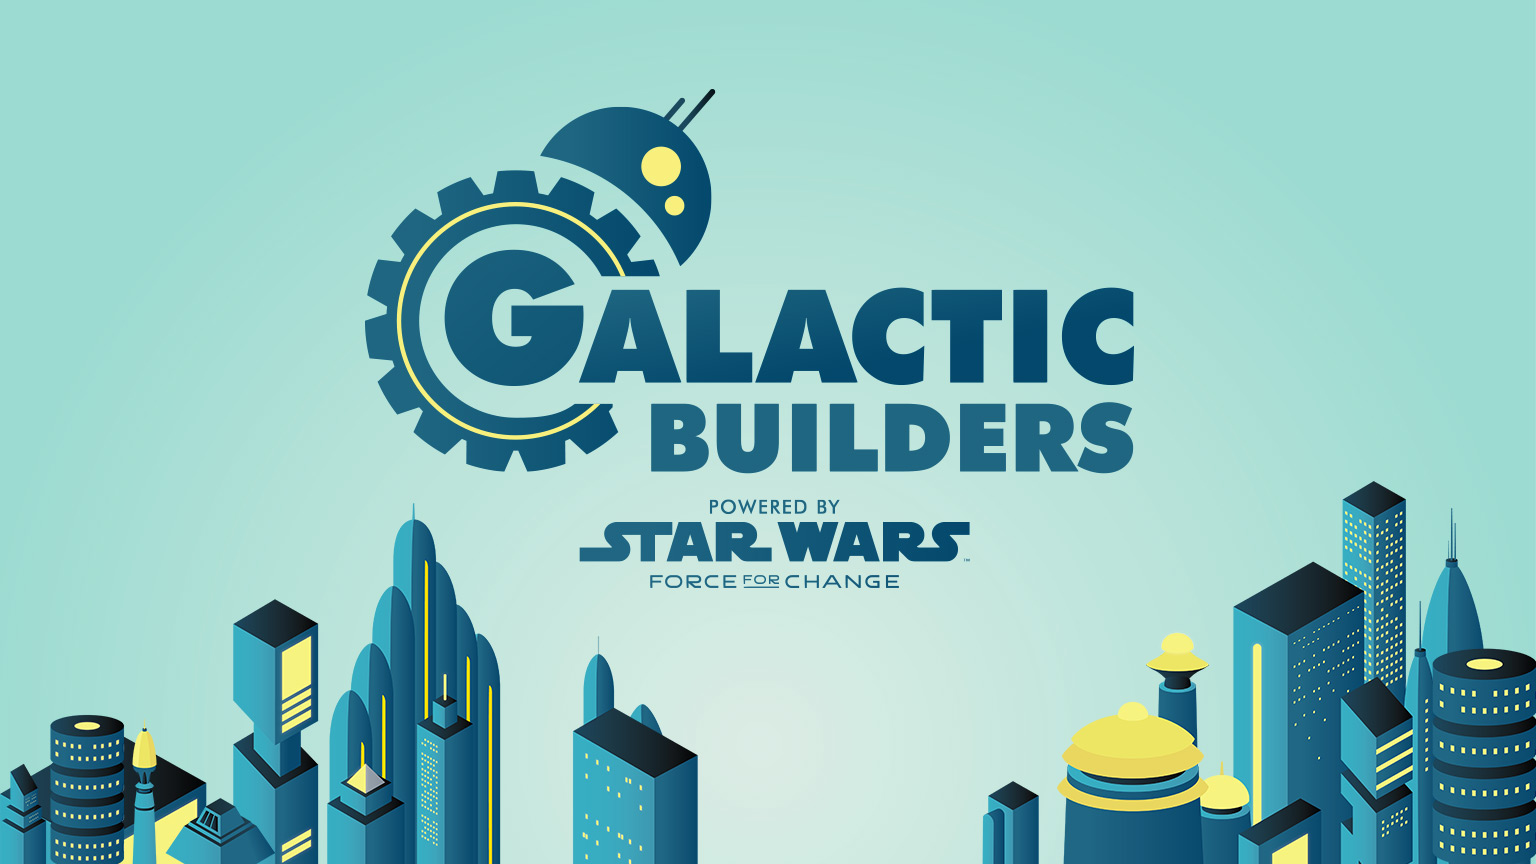 GALACTIC BUILDERS VISIT STAR WARS GALAXYS EDGE